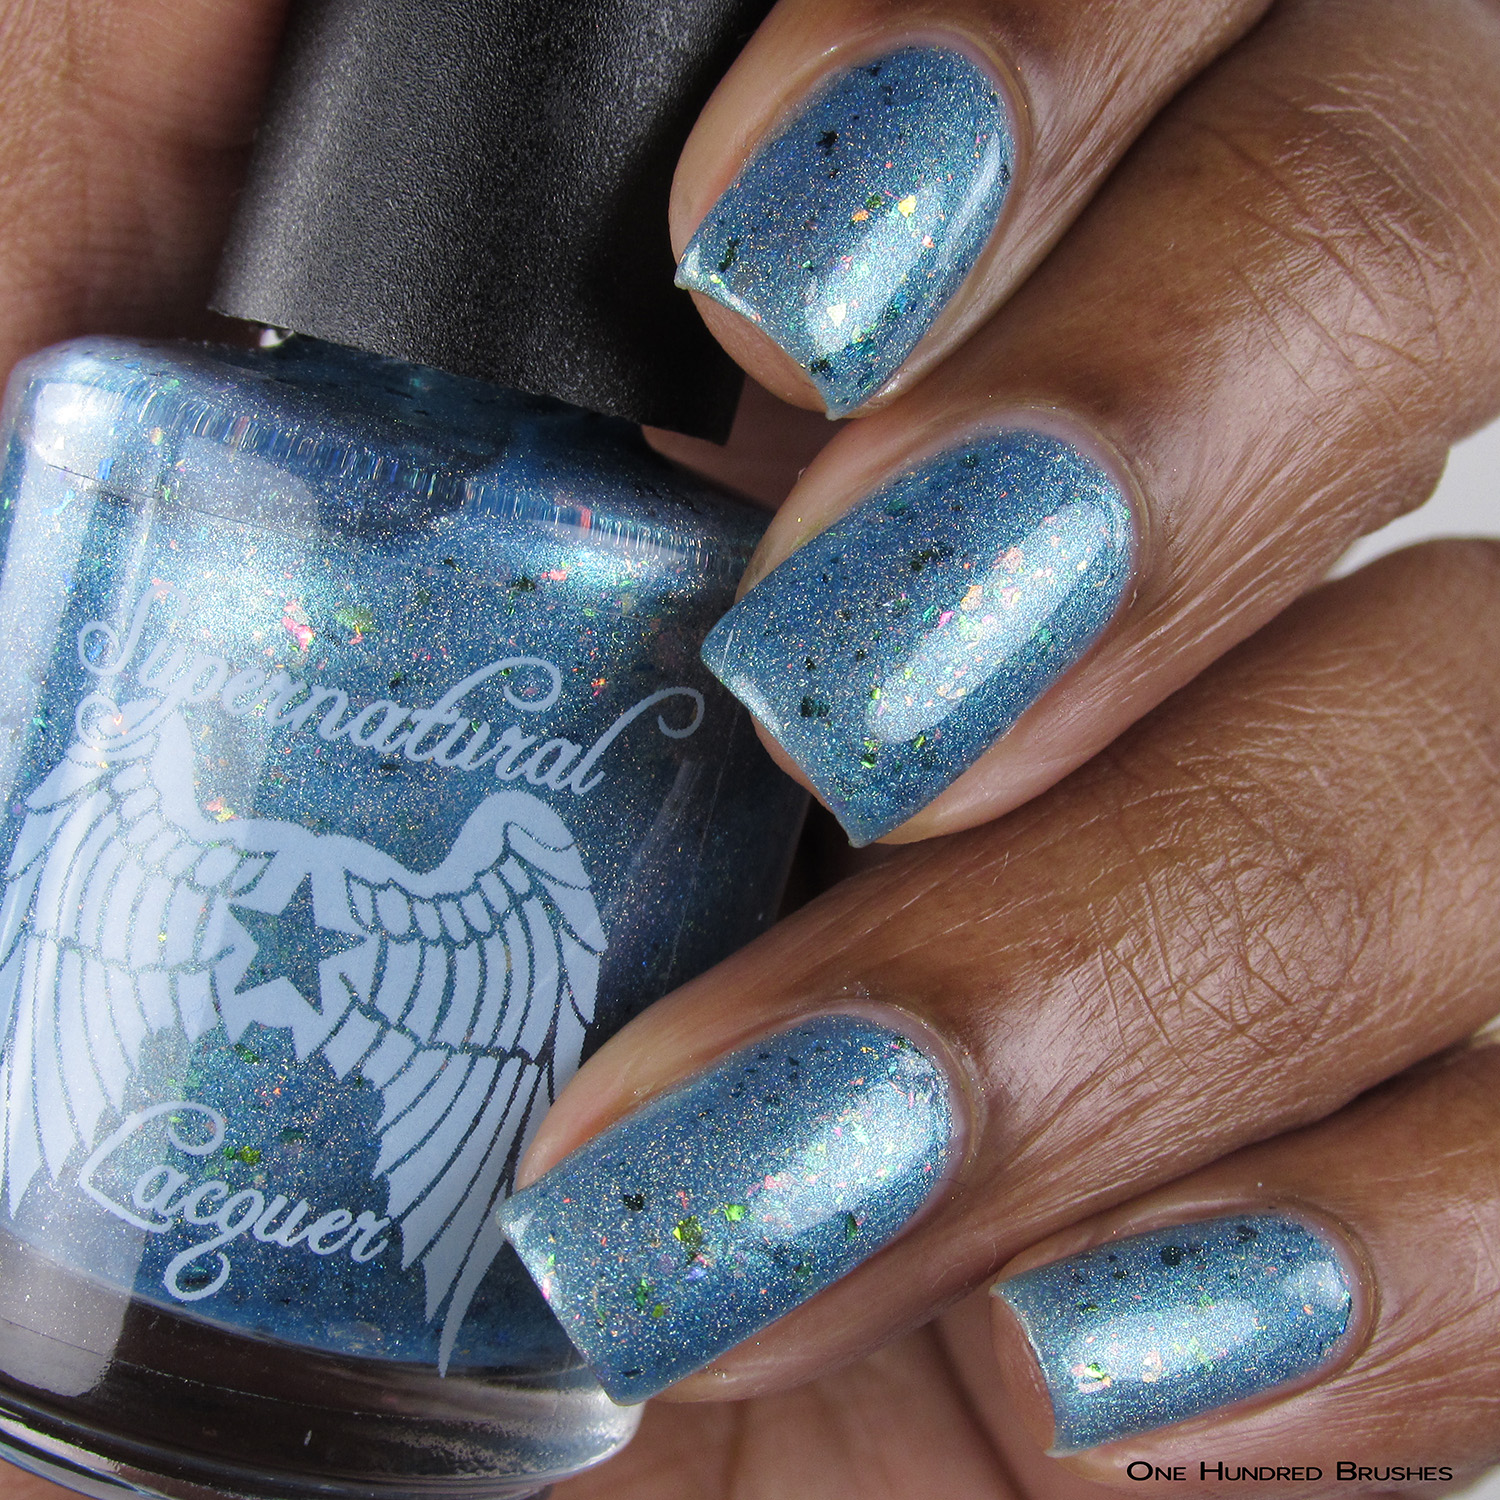 Everything's Shiny Cap'n! - Bottle Front - Supernatural Lacquer - July HHC